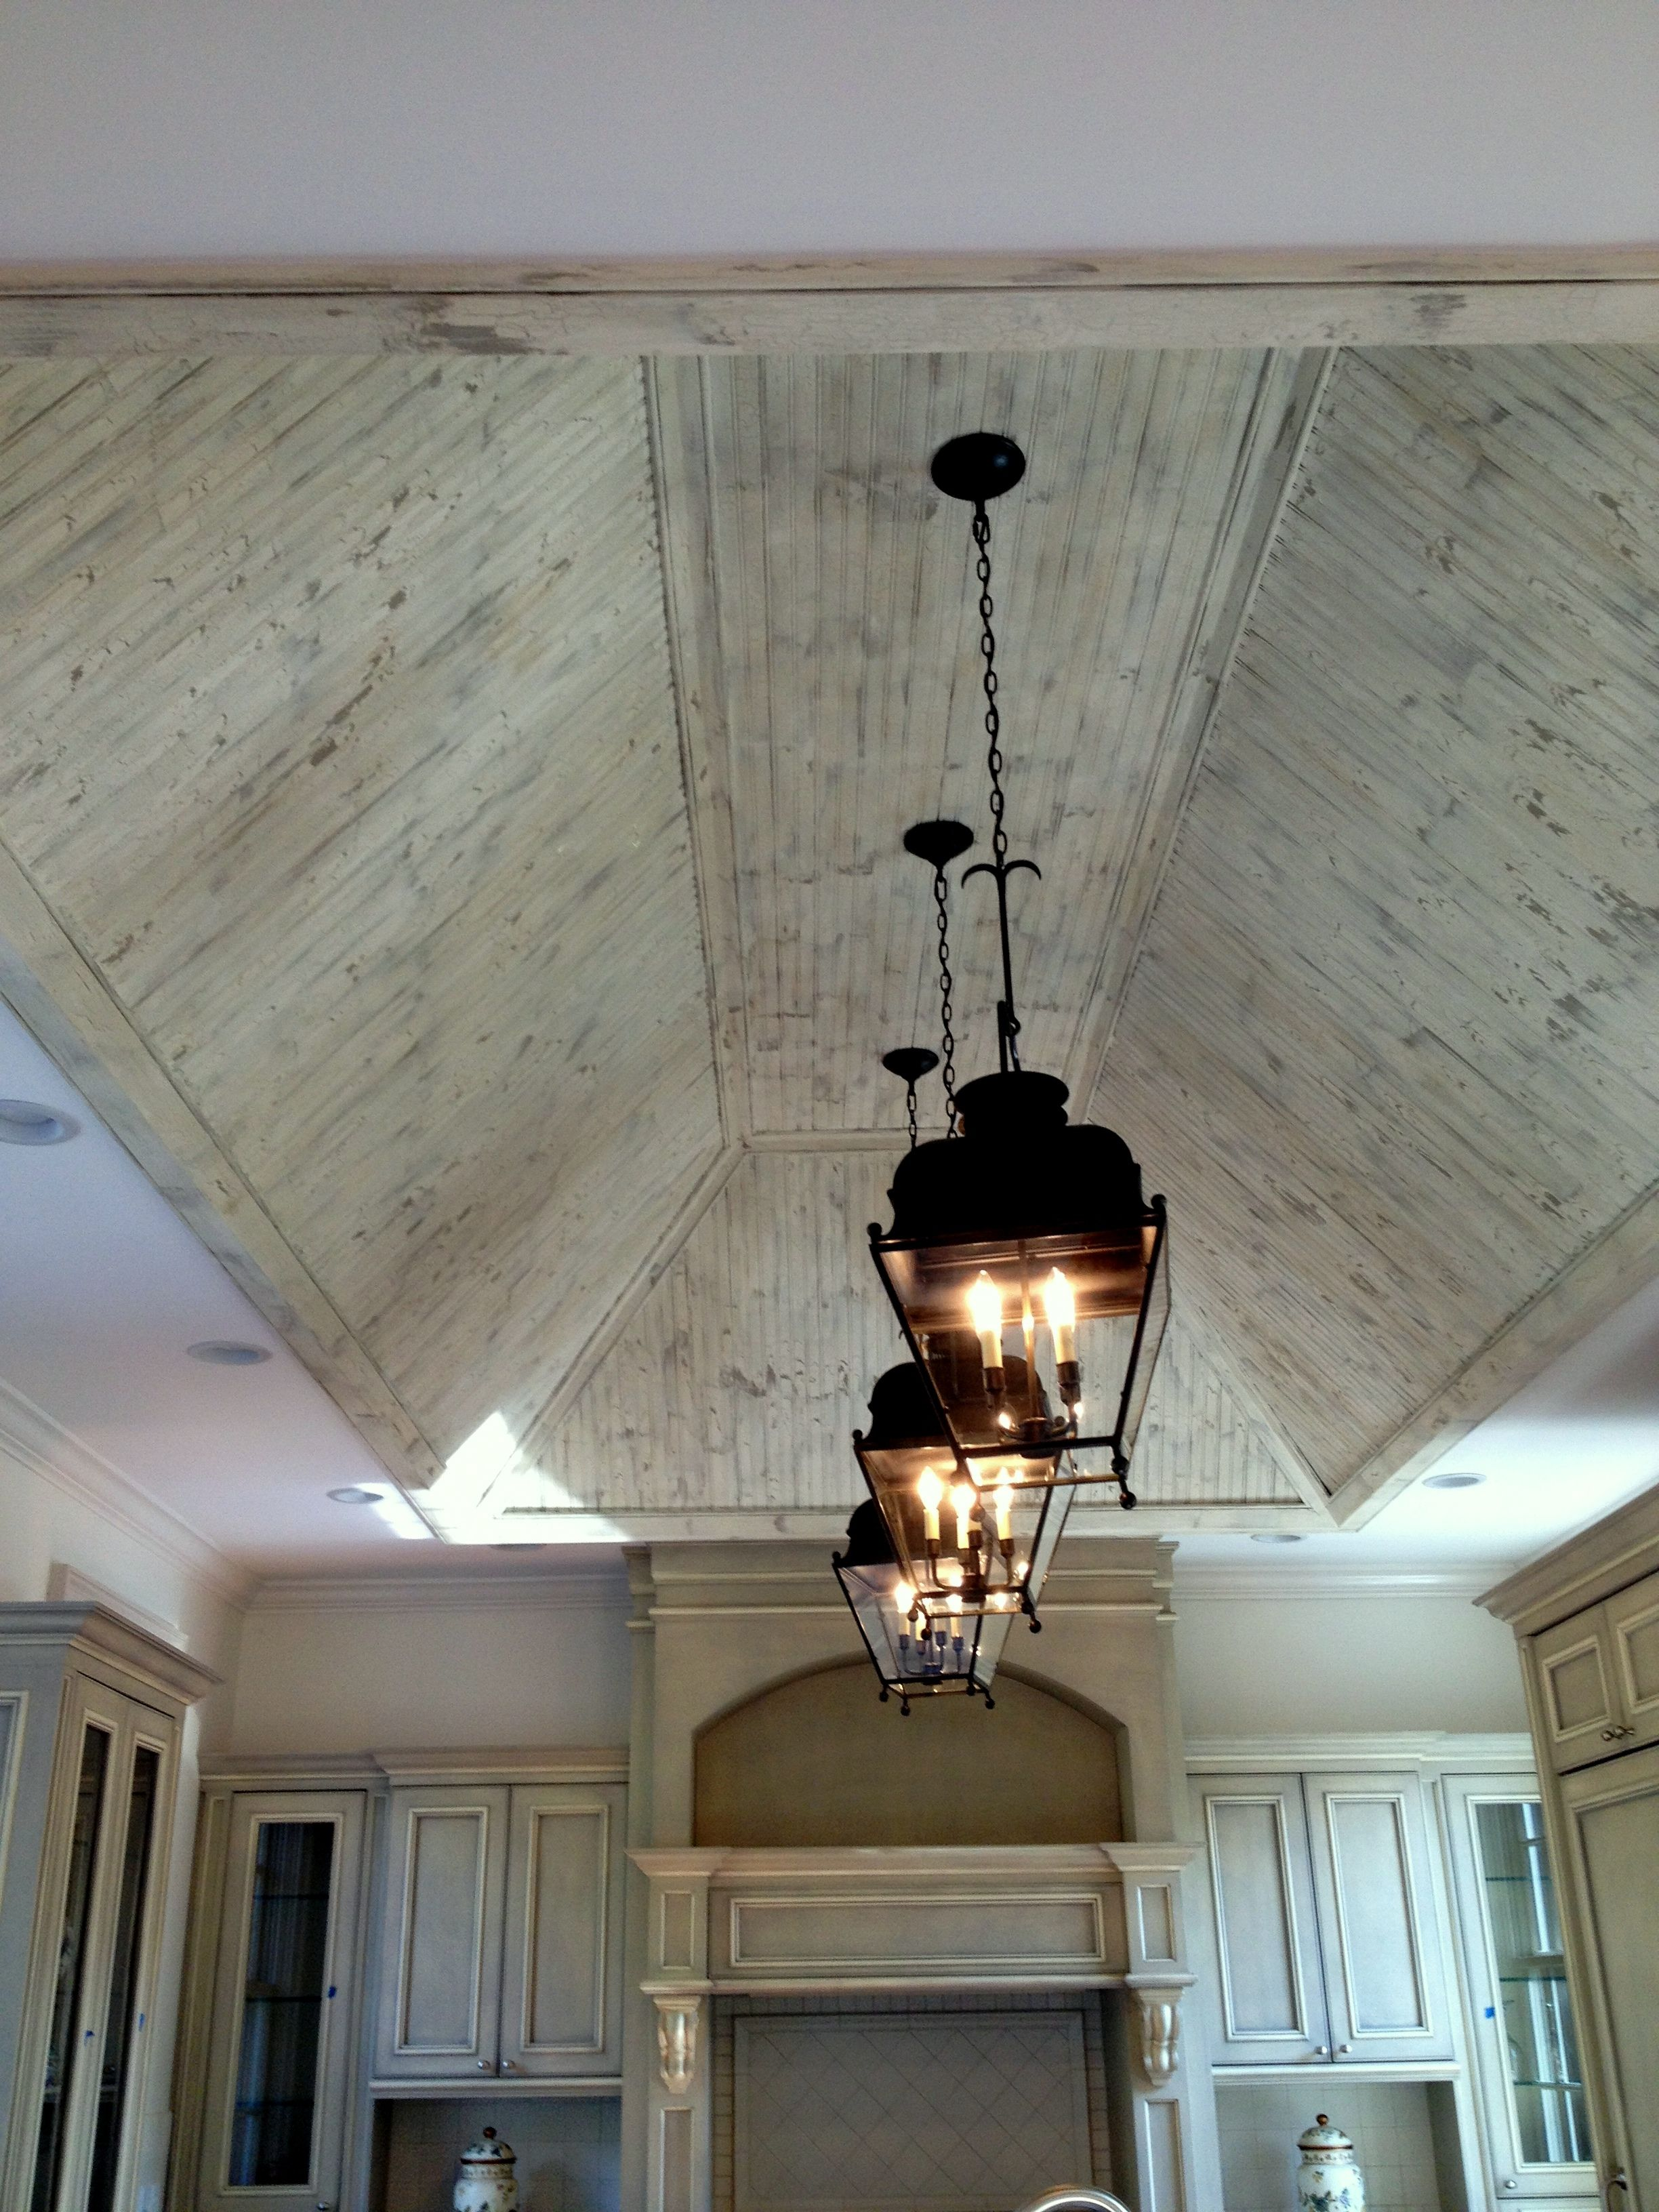 This kitchen ceiling was distressed and antiqued to compliment this